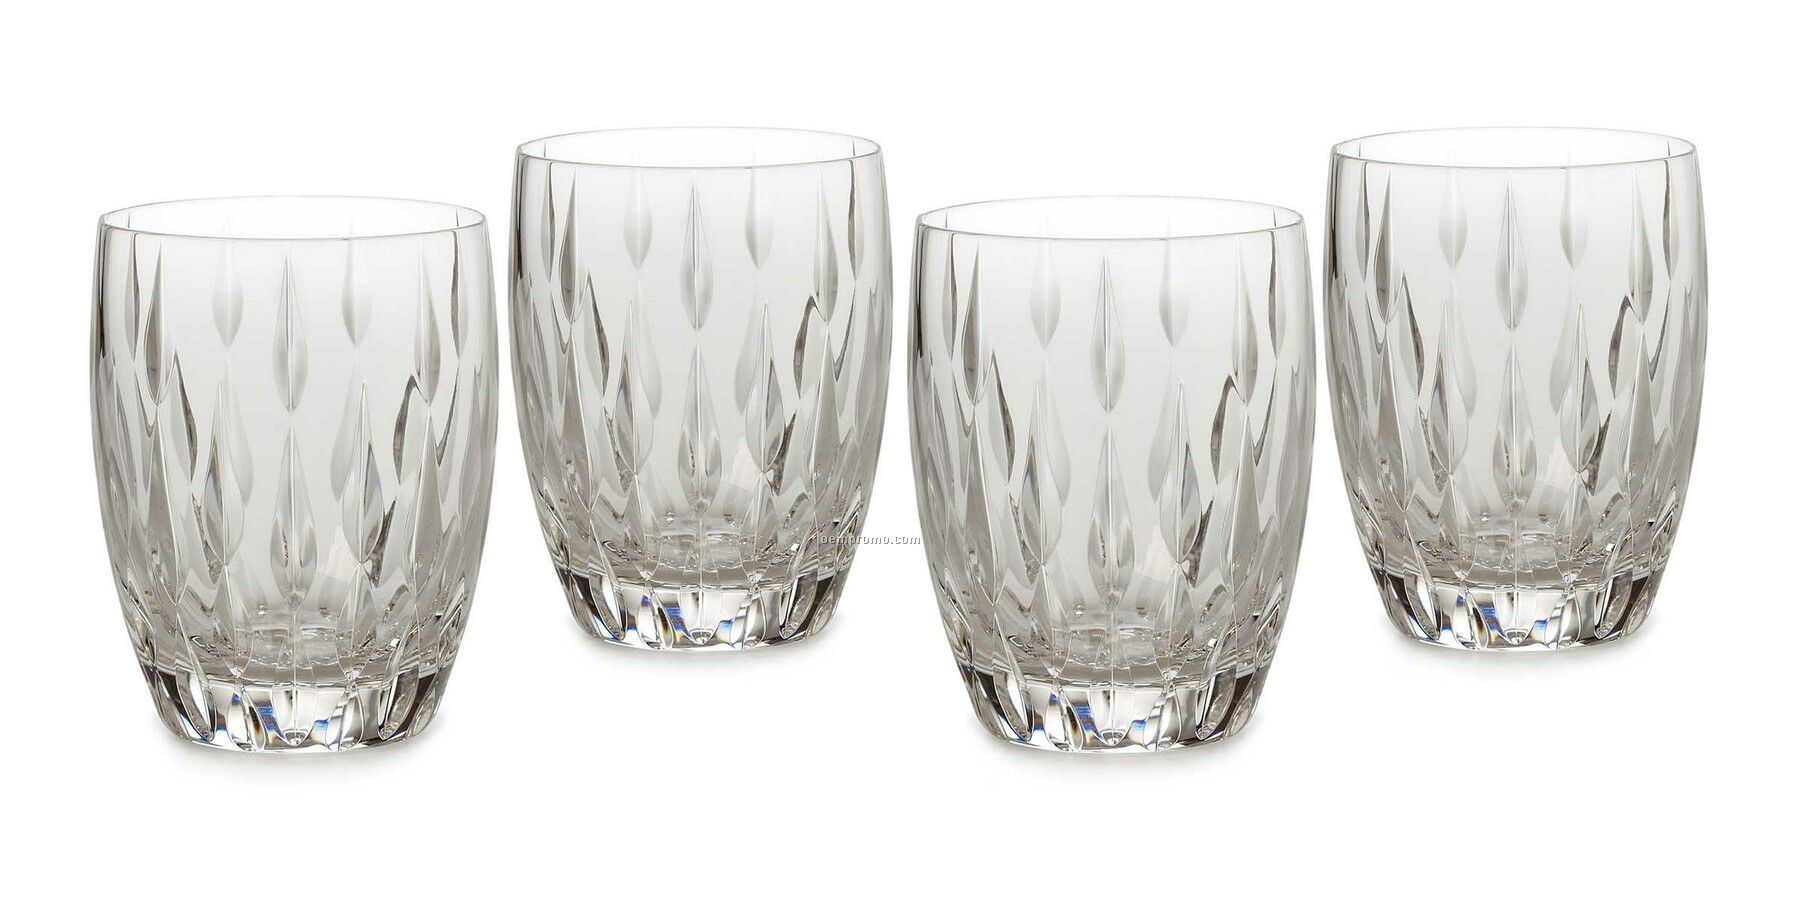 Drinking Glasseschina Wholesale Drinking Glasses Page 19